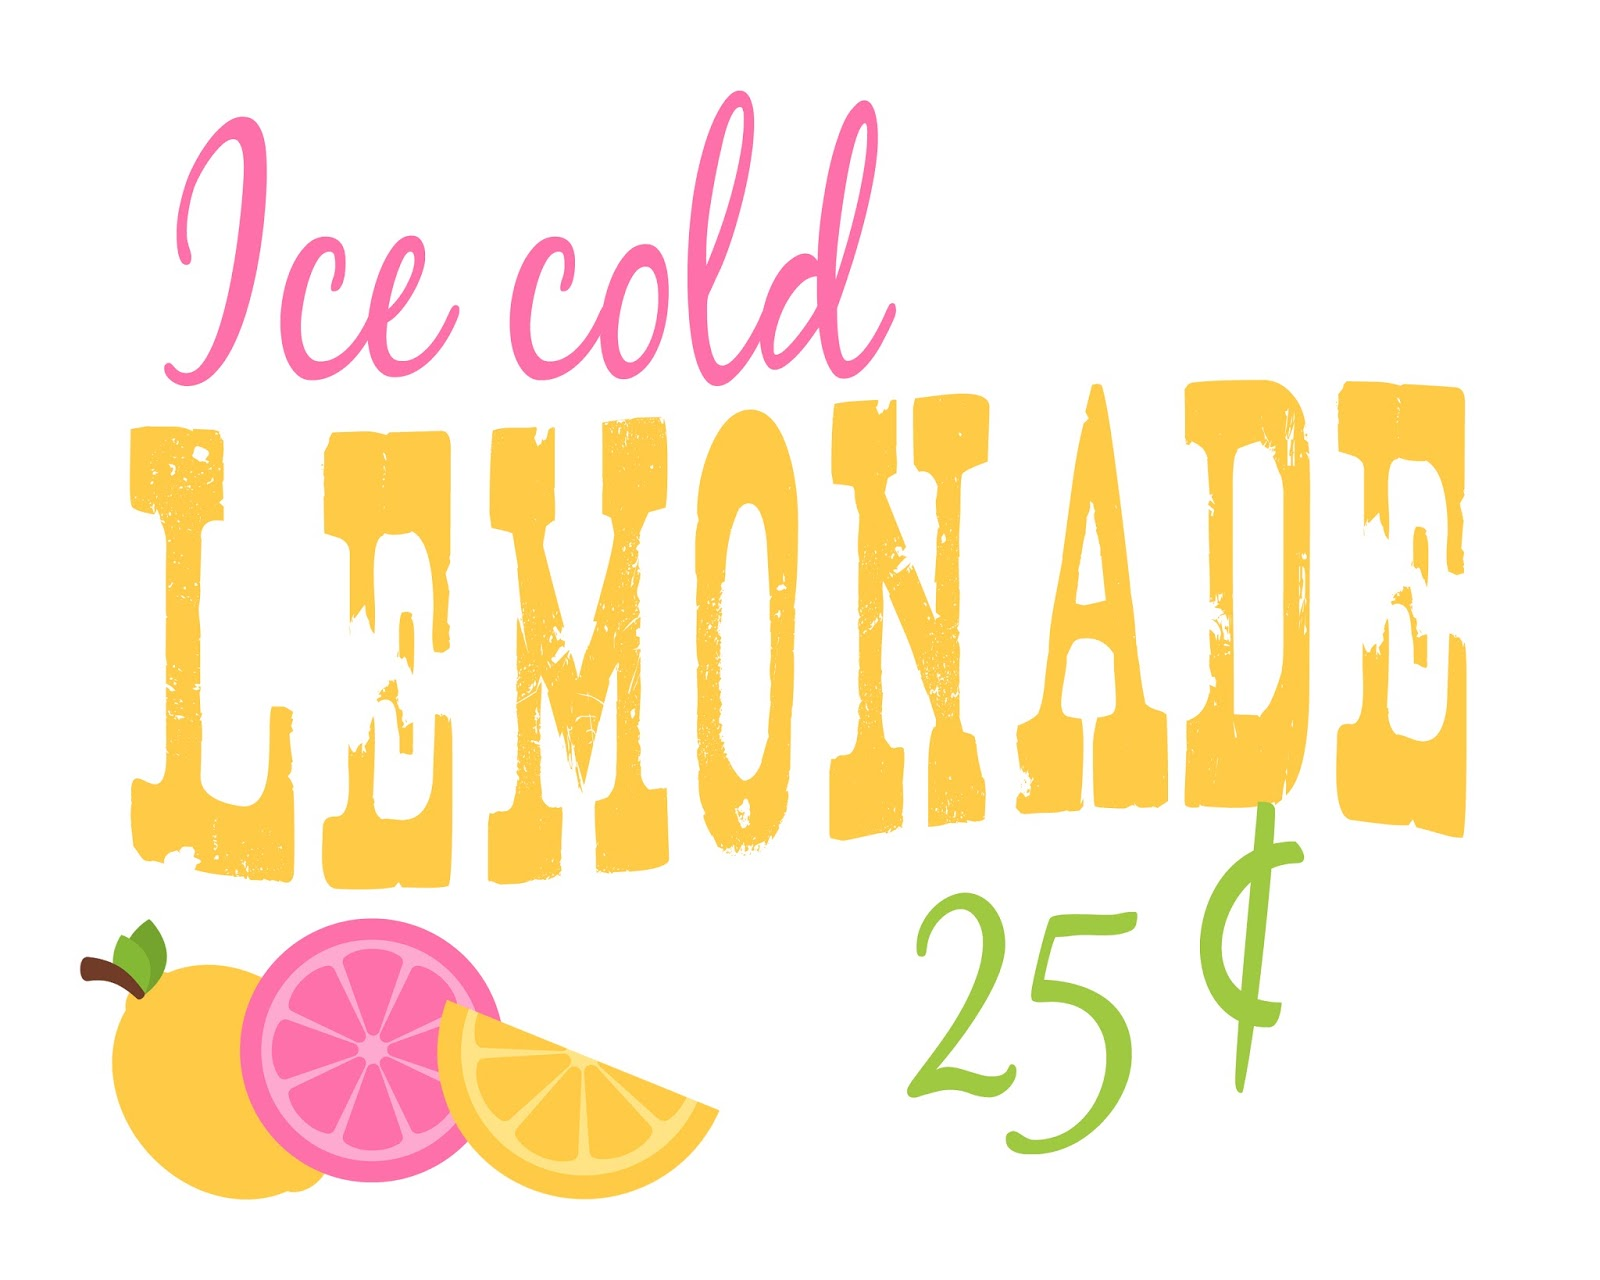 Recipes from Stephanie: Lemonade Stand Printables